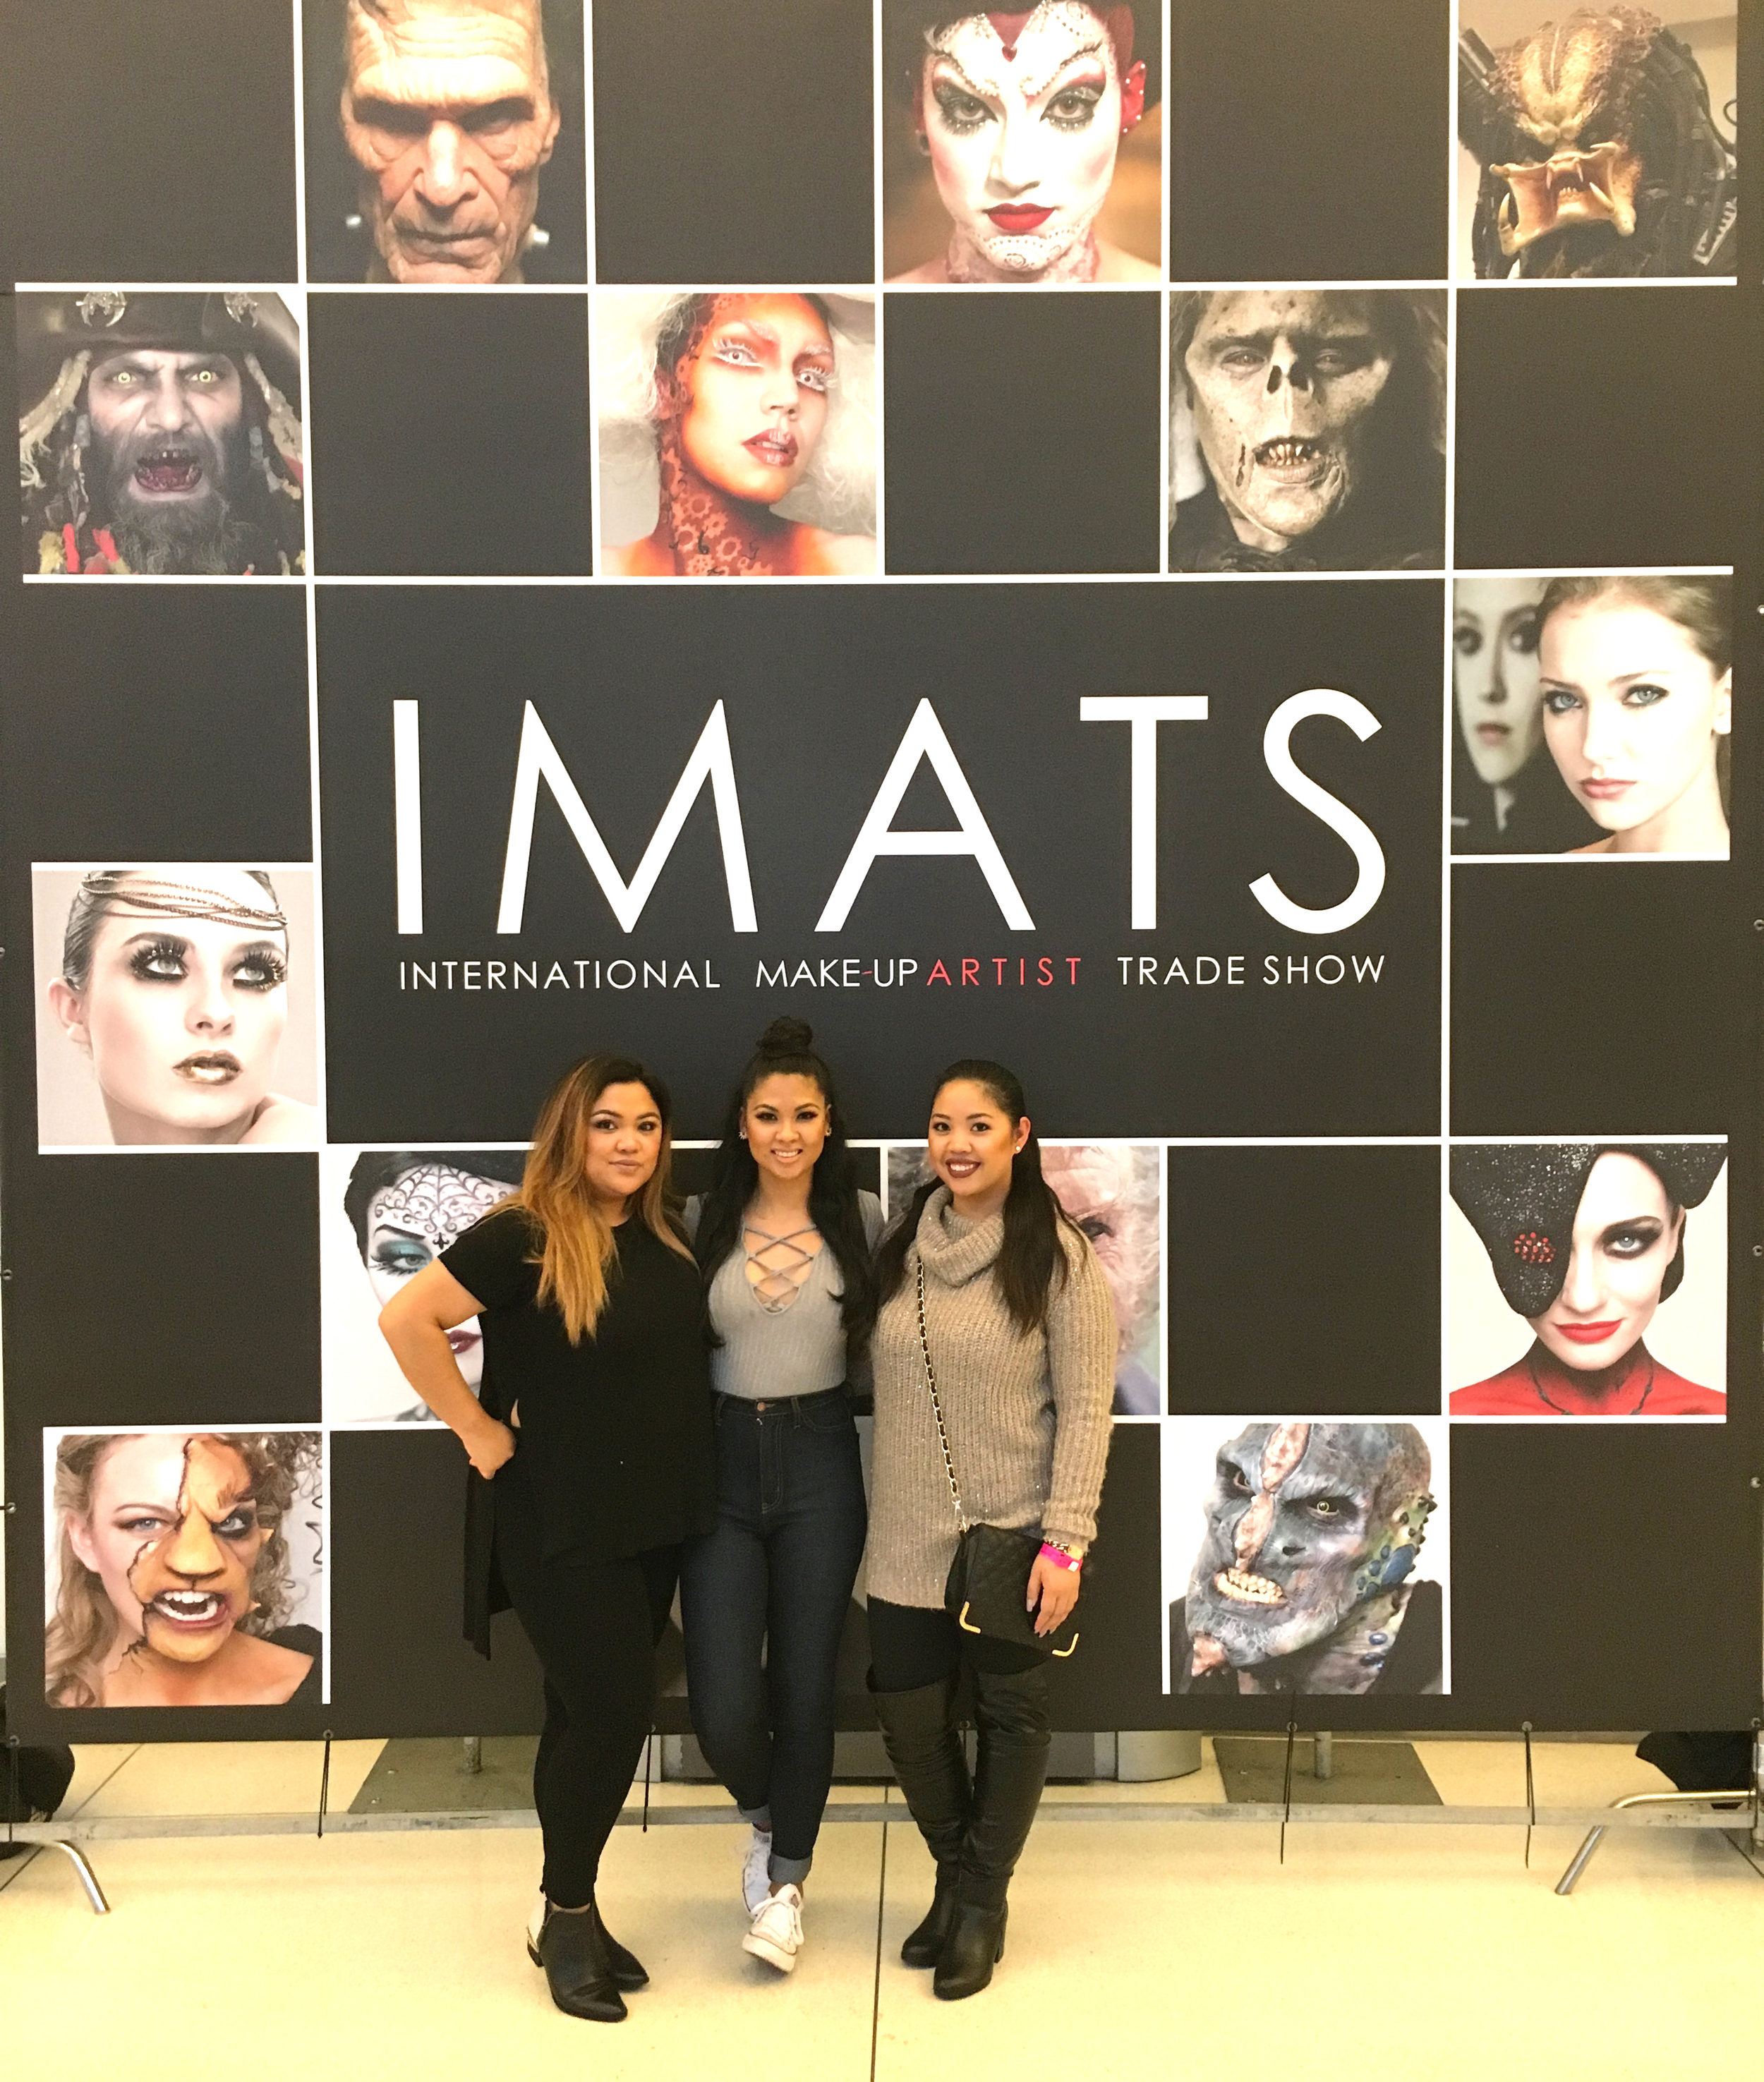 Obligatory IMATS photo with my BFFs